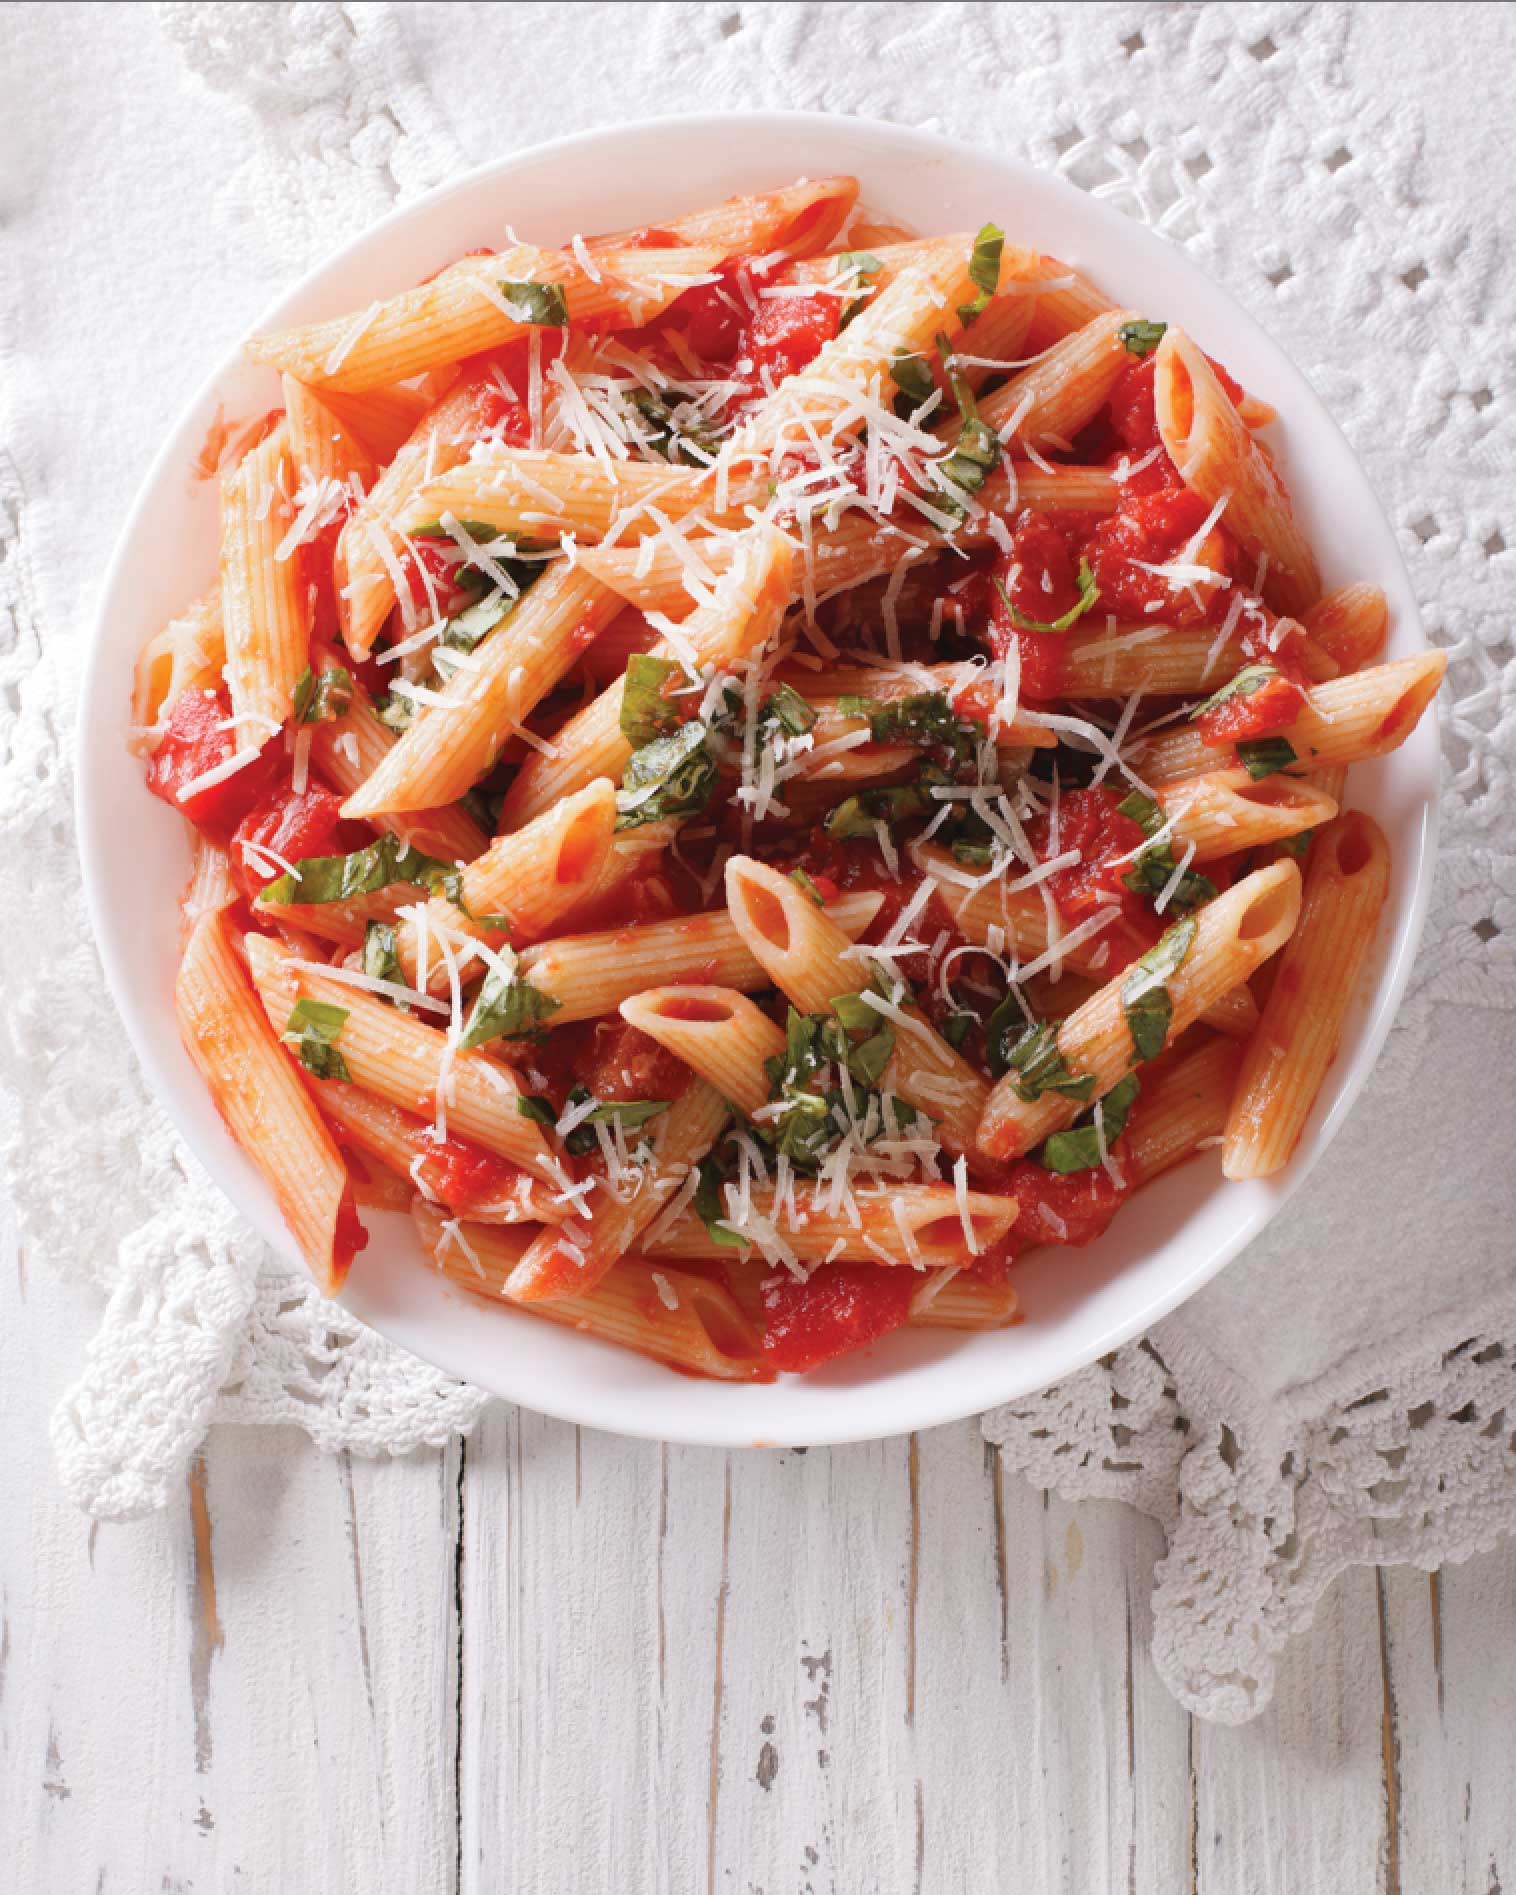 Saucy Penne Rigate